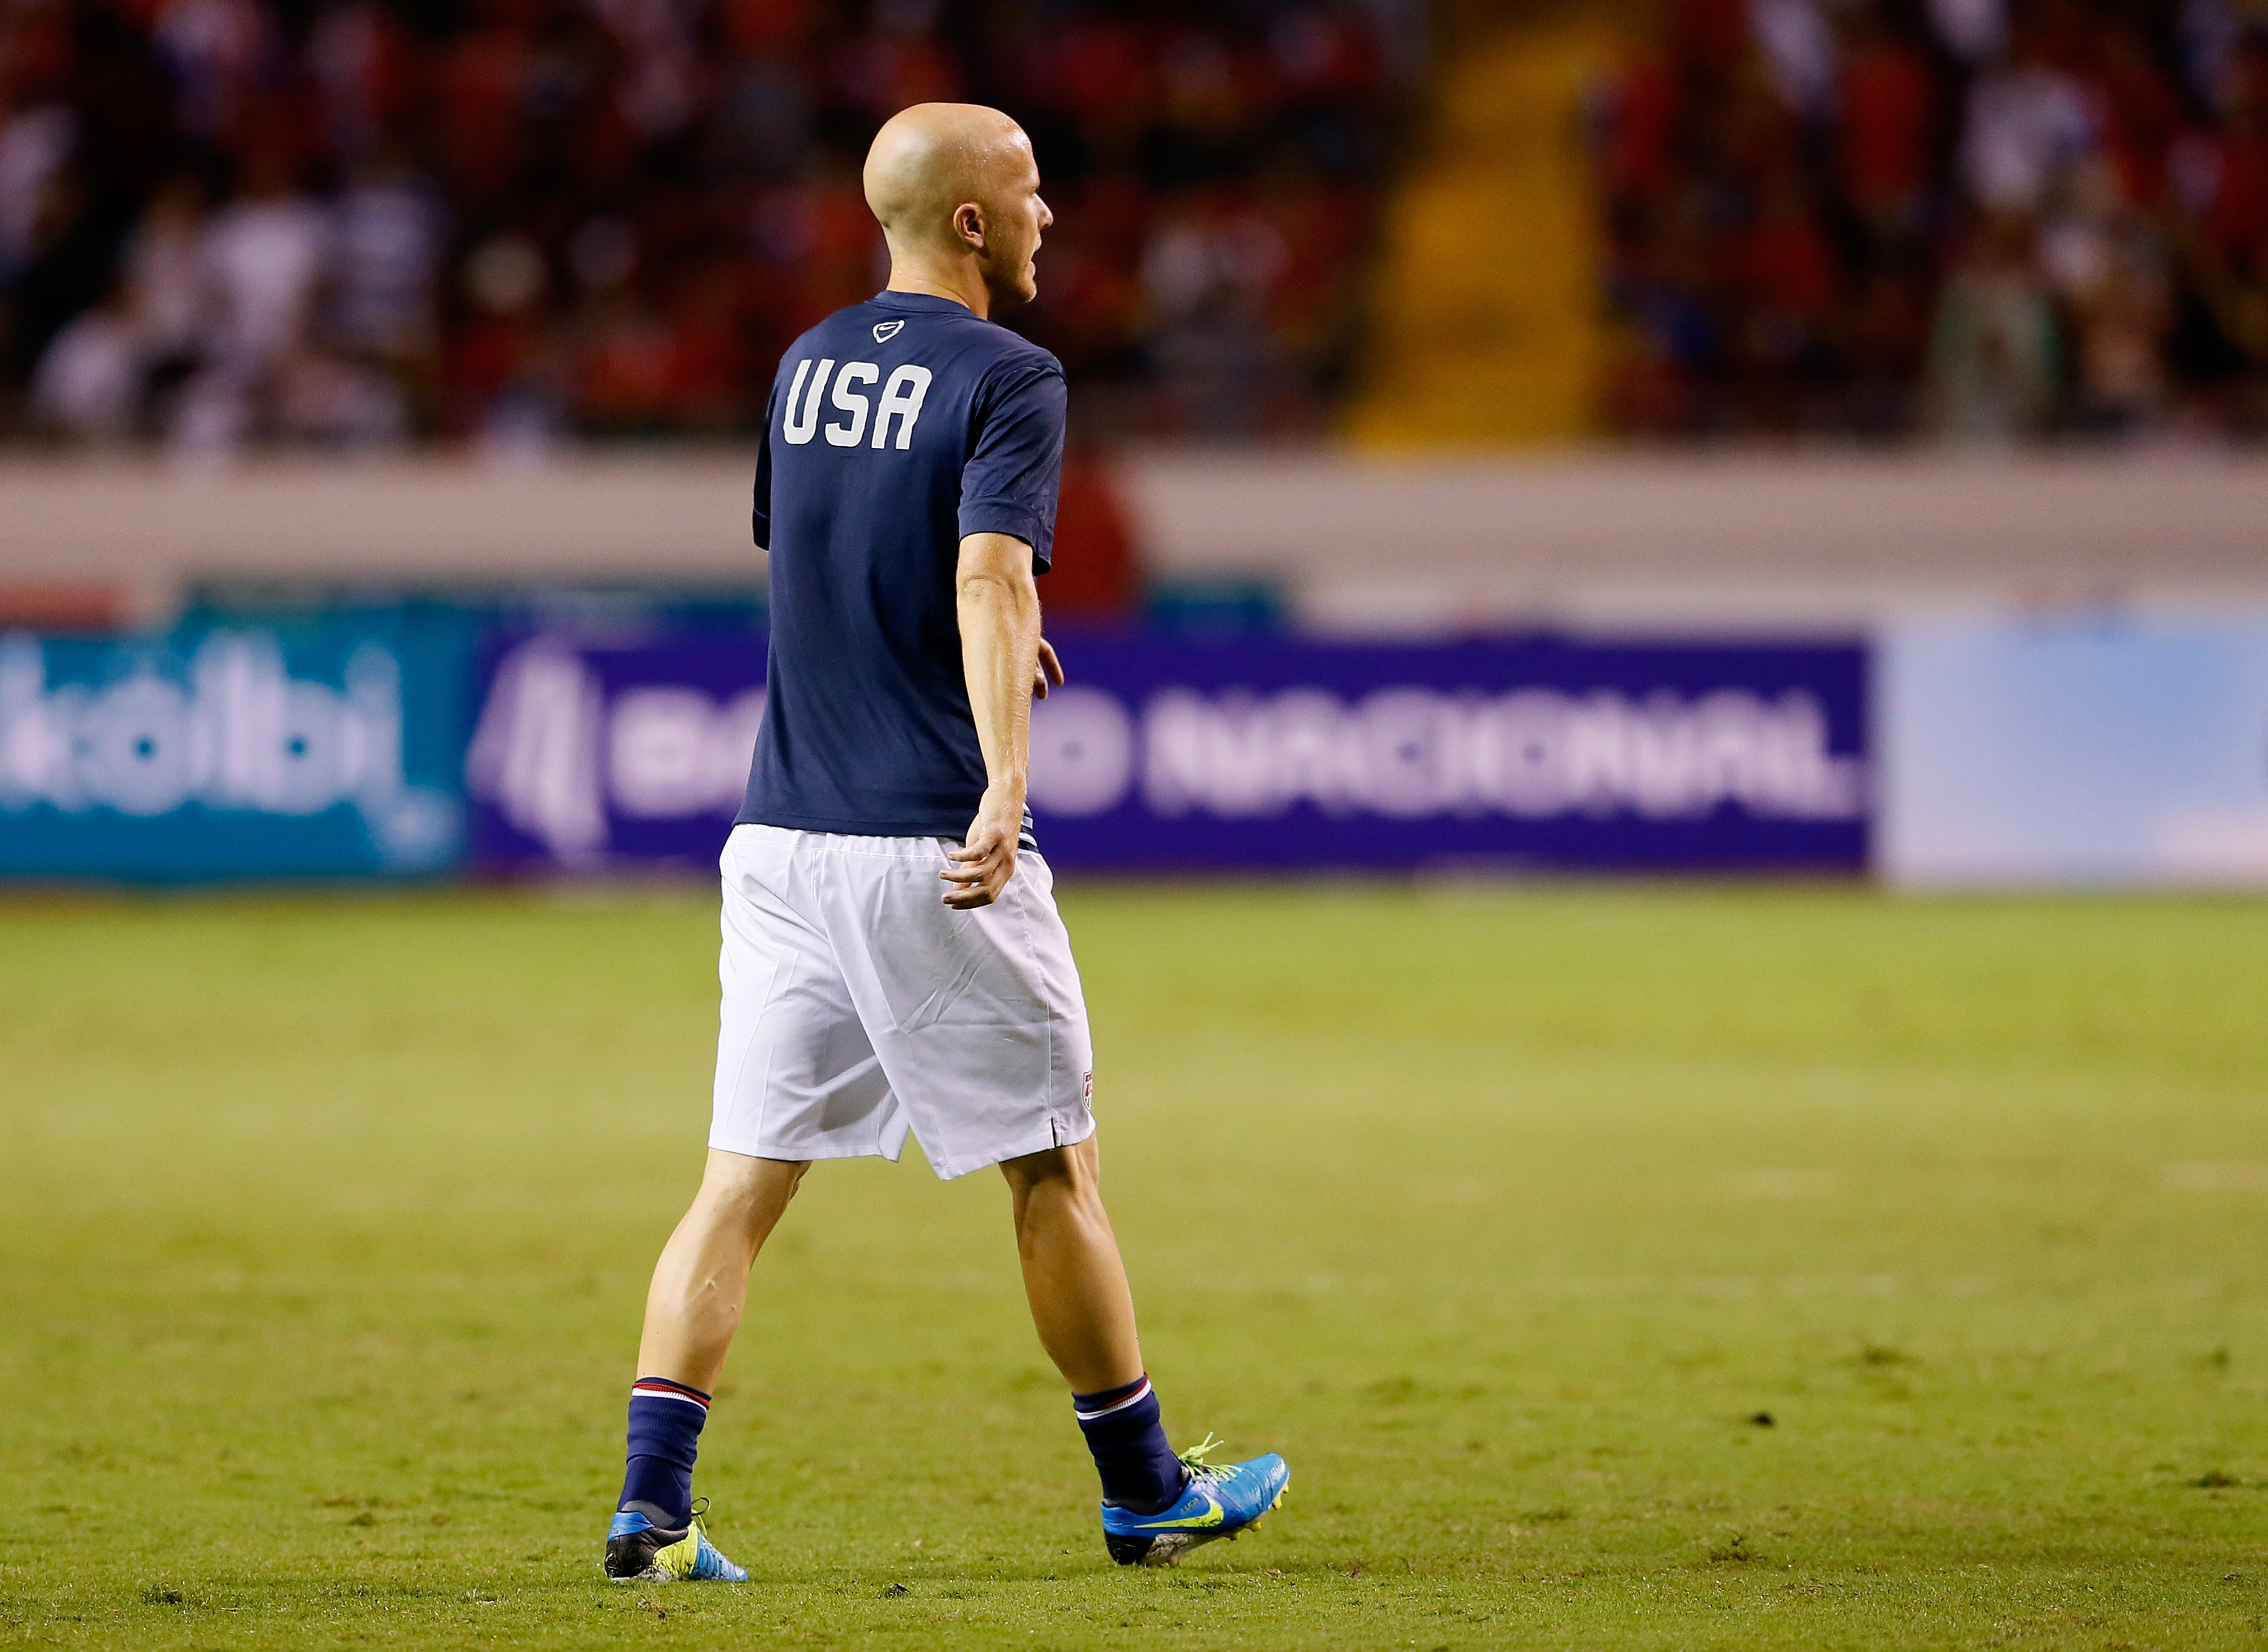 He has the weight of the American soccer watching public on his back.